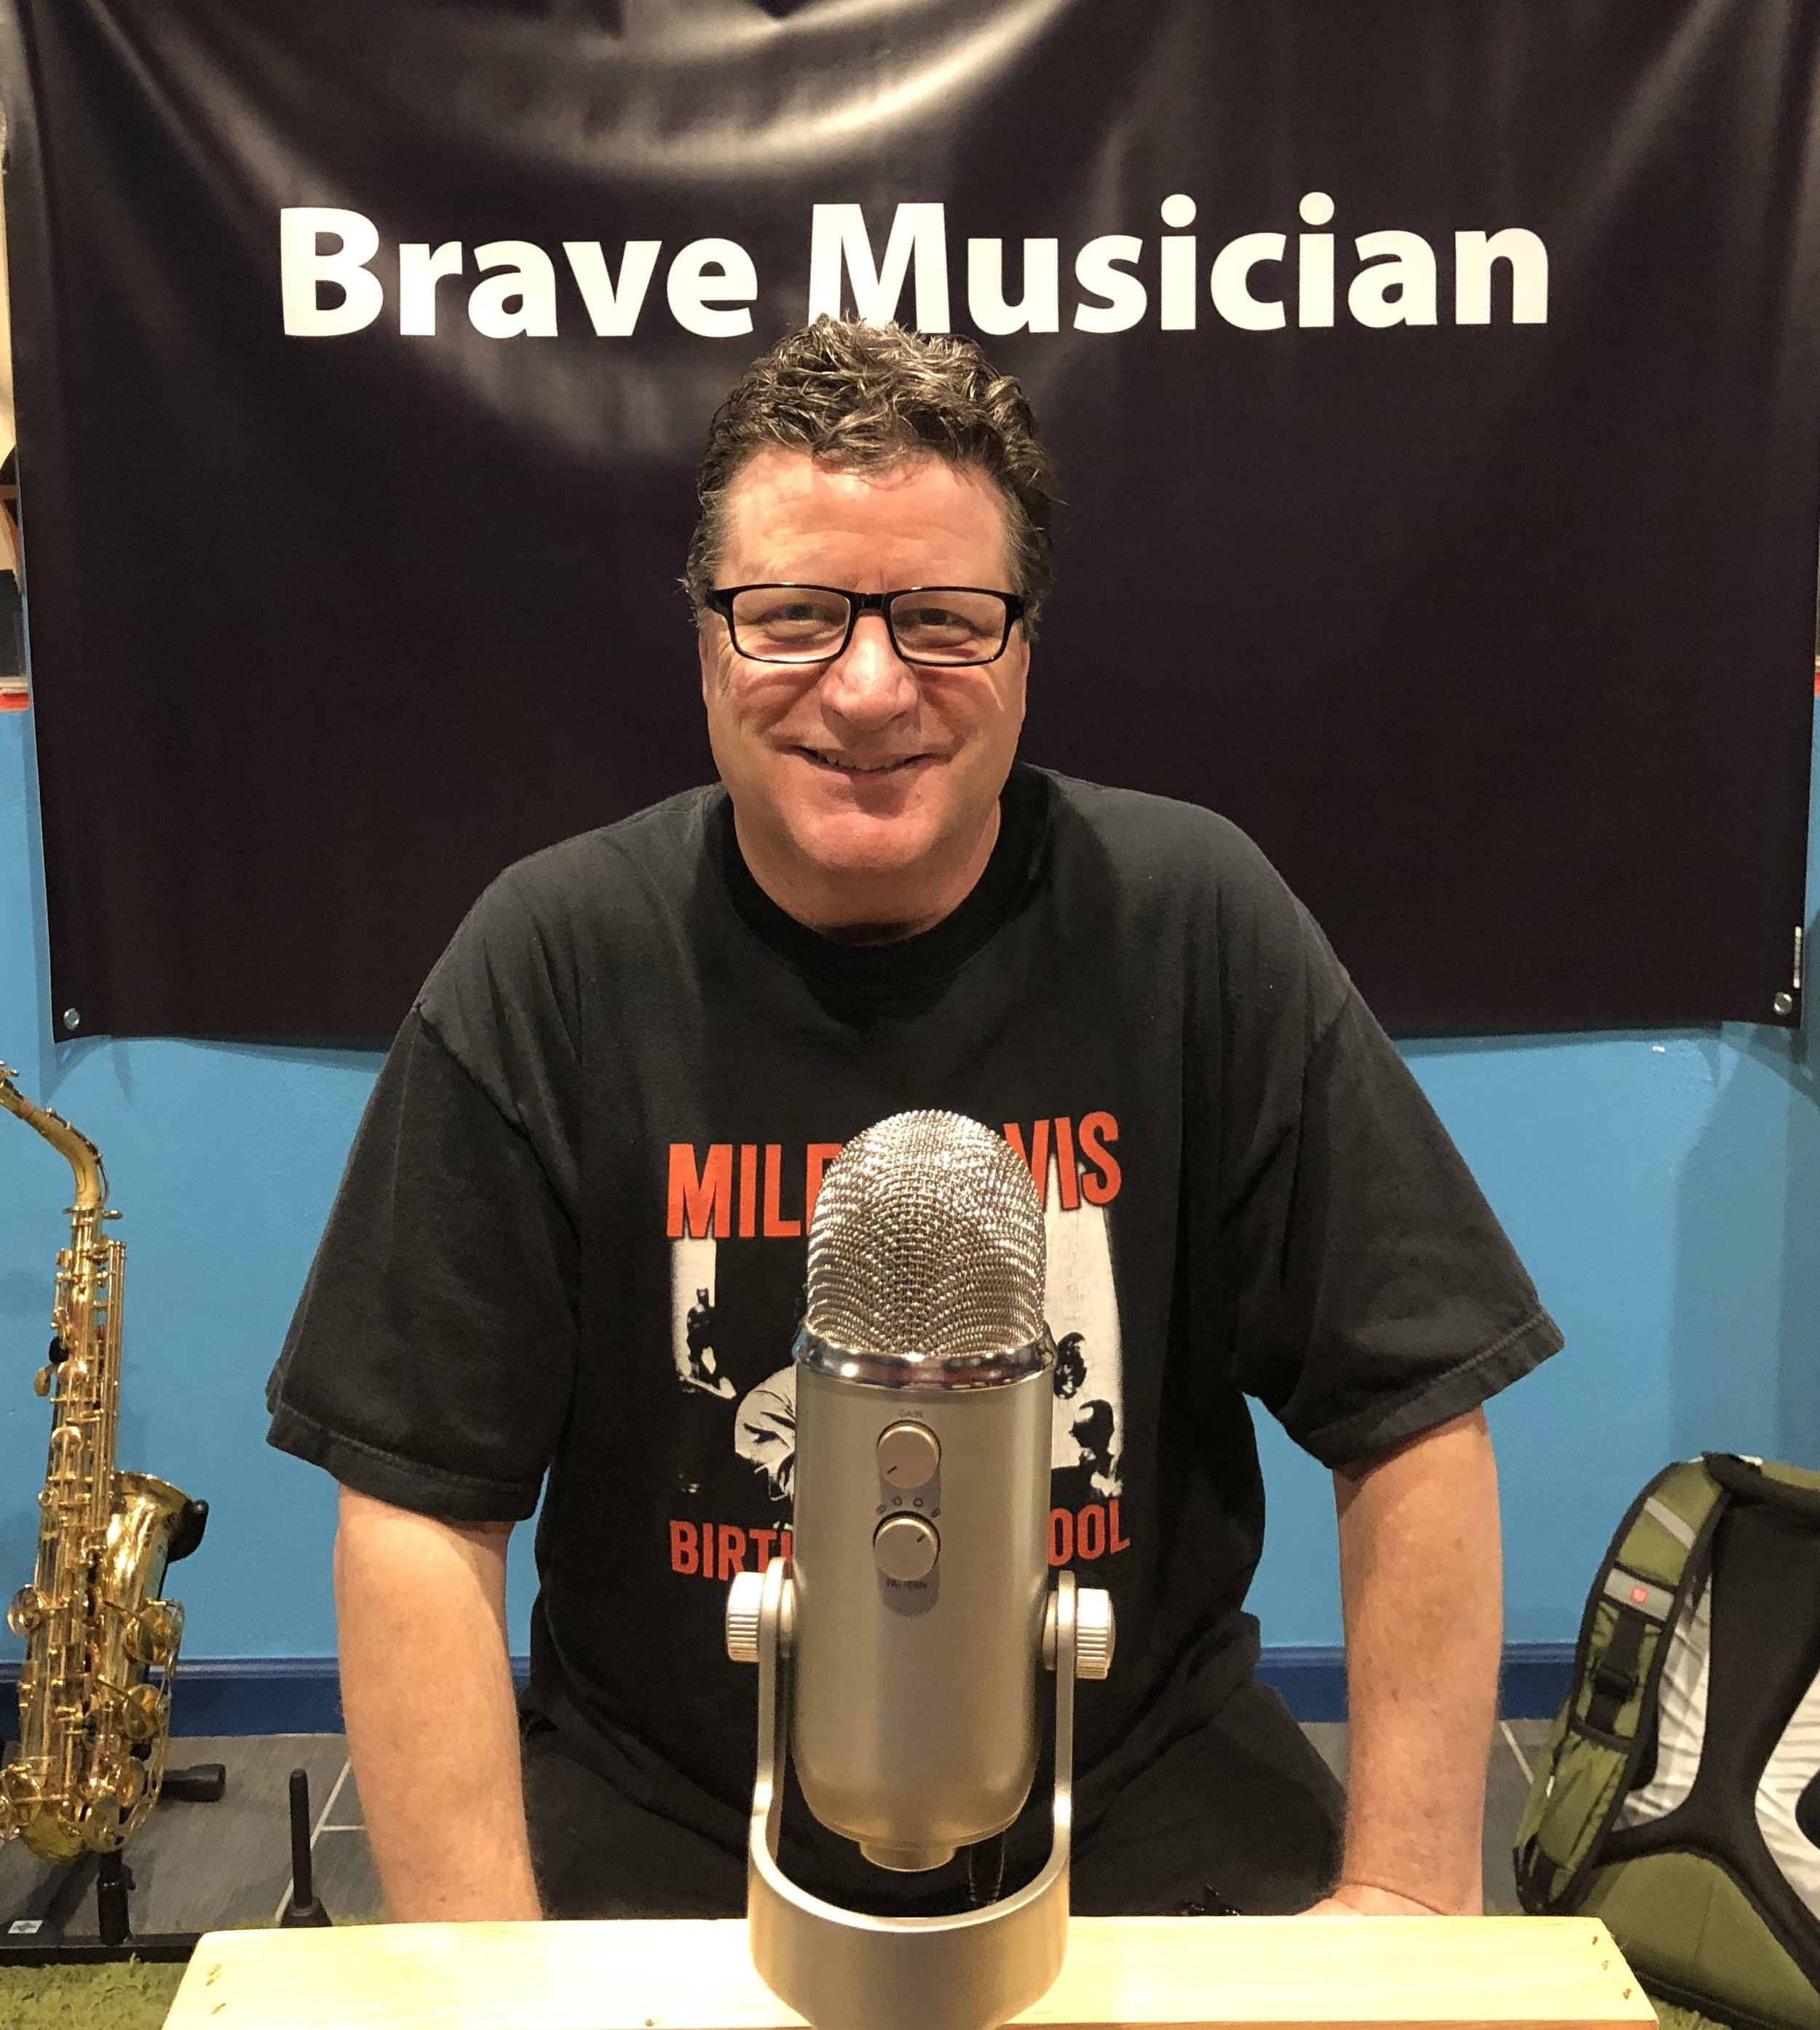 Chuck Curry smiling for the camera in front of the Brave Musician banner in Monica's music studio.